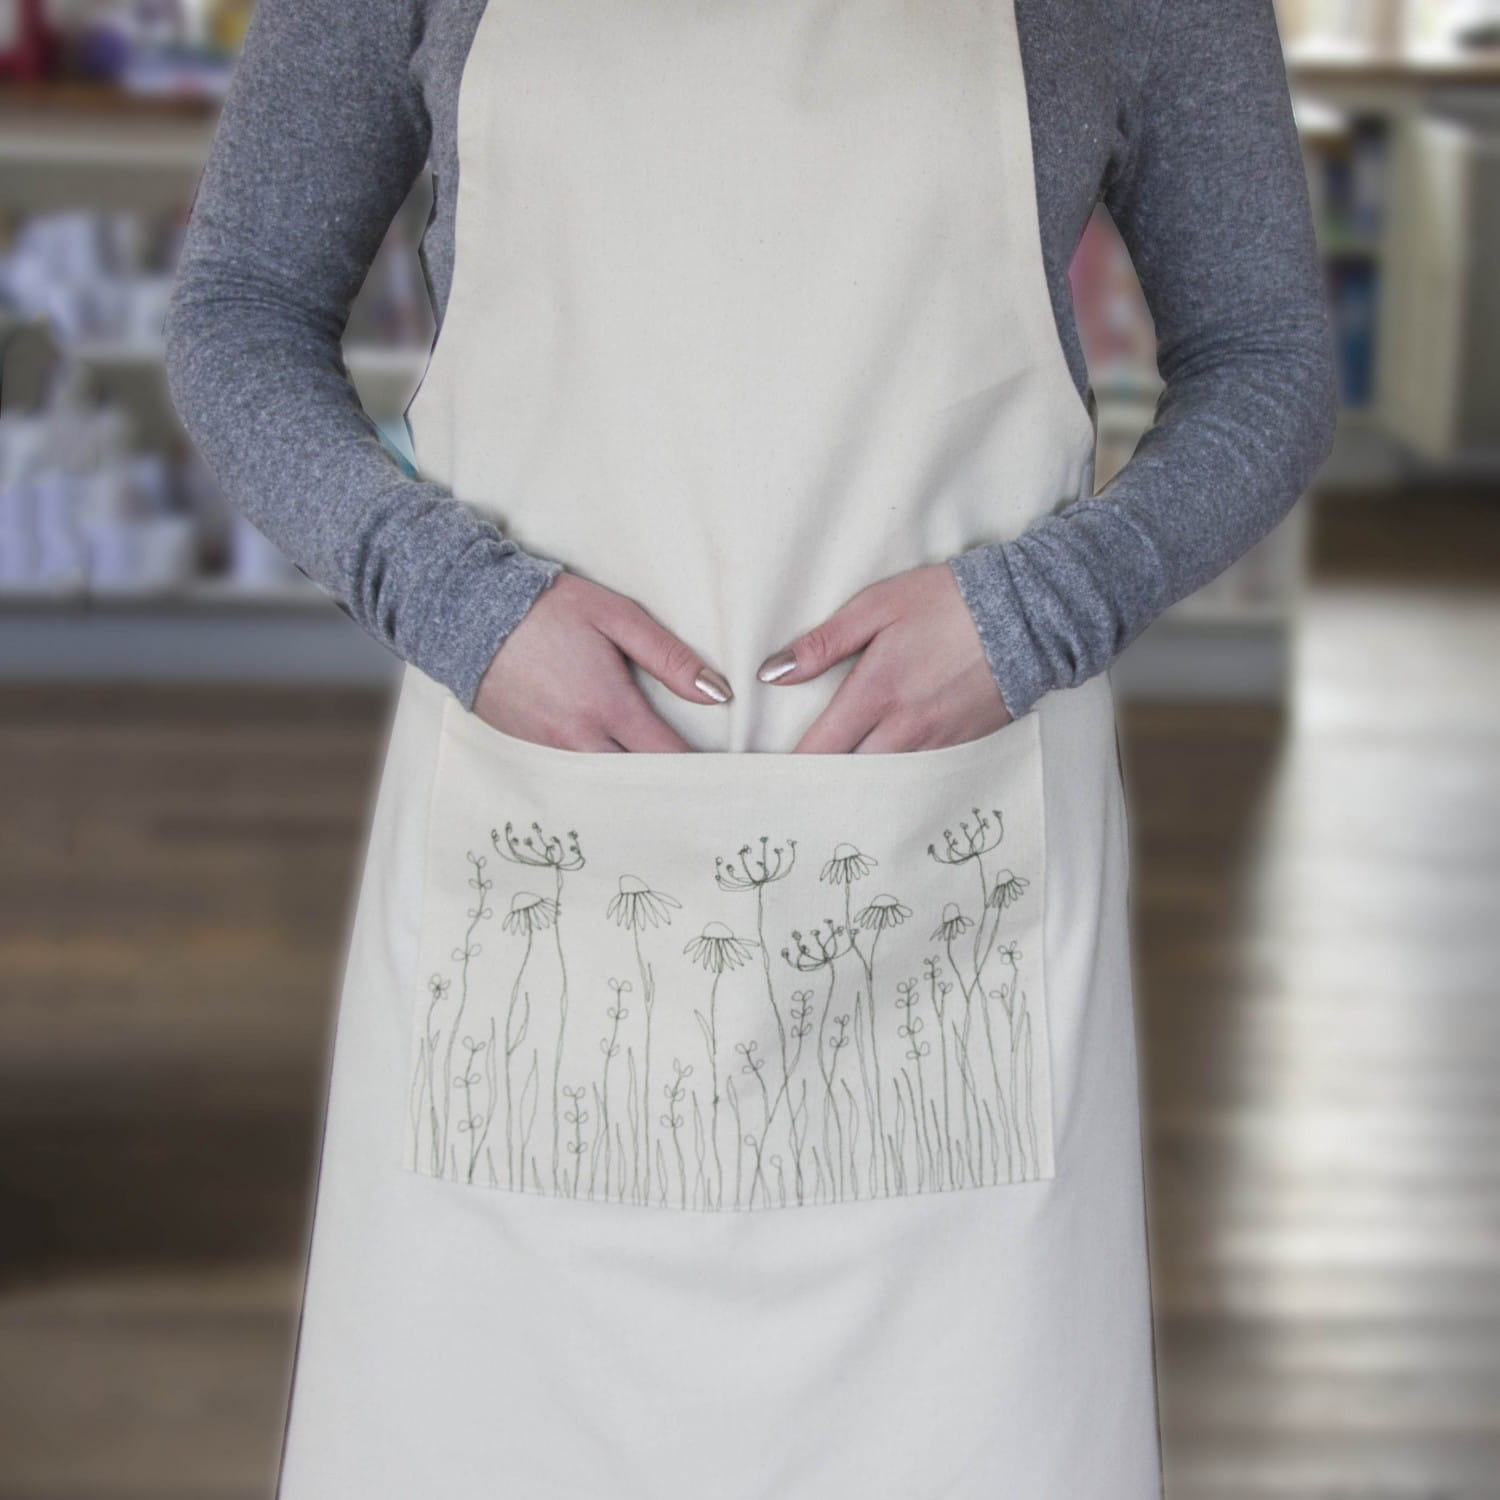 5477-1079_embroidered-meadow-flowers-apron-zoom.jpg